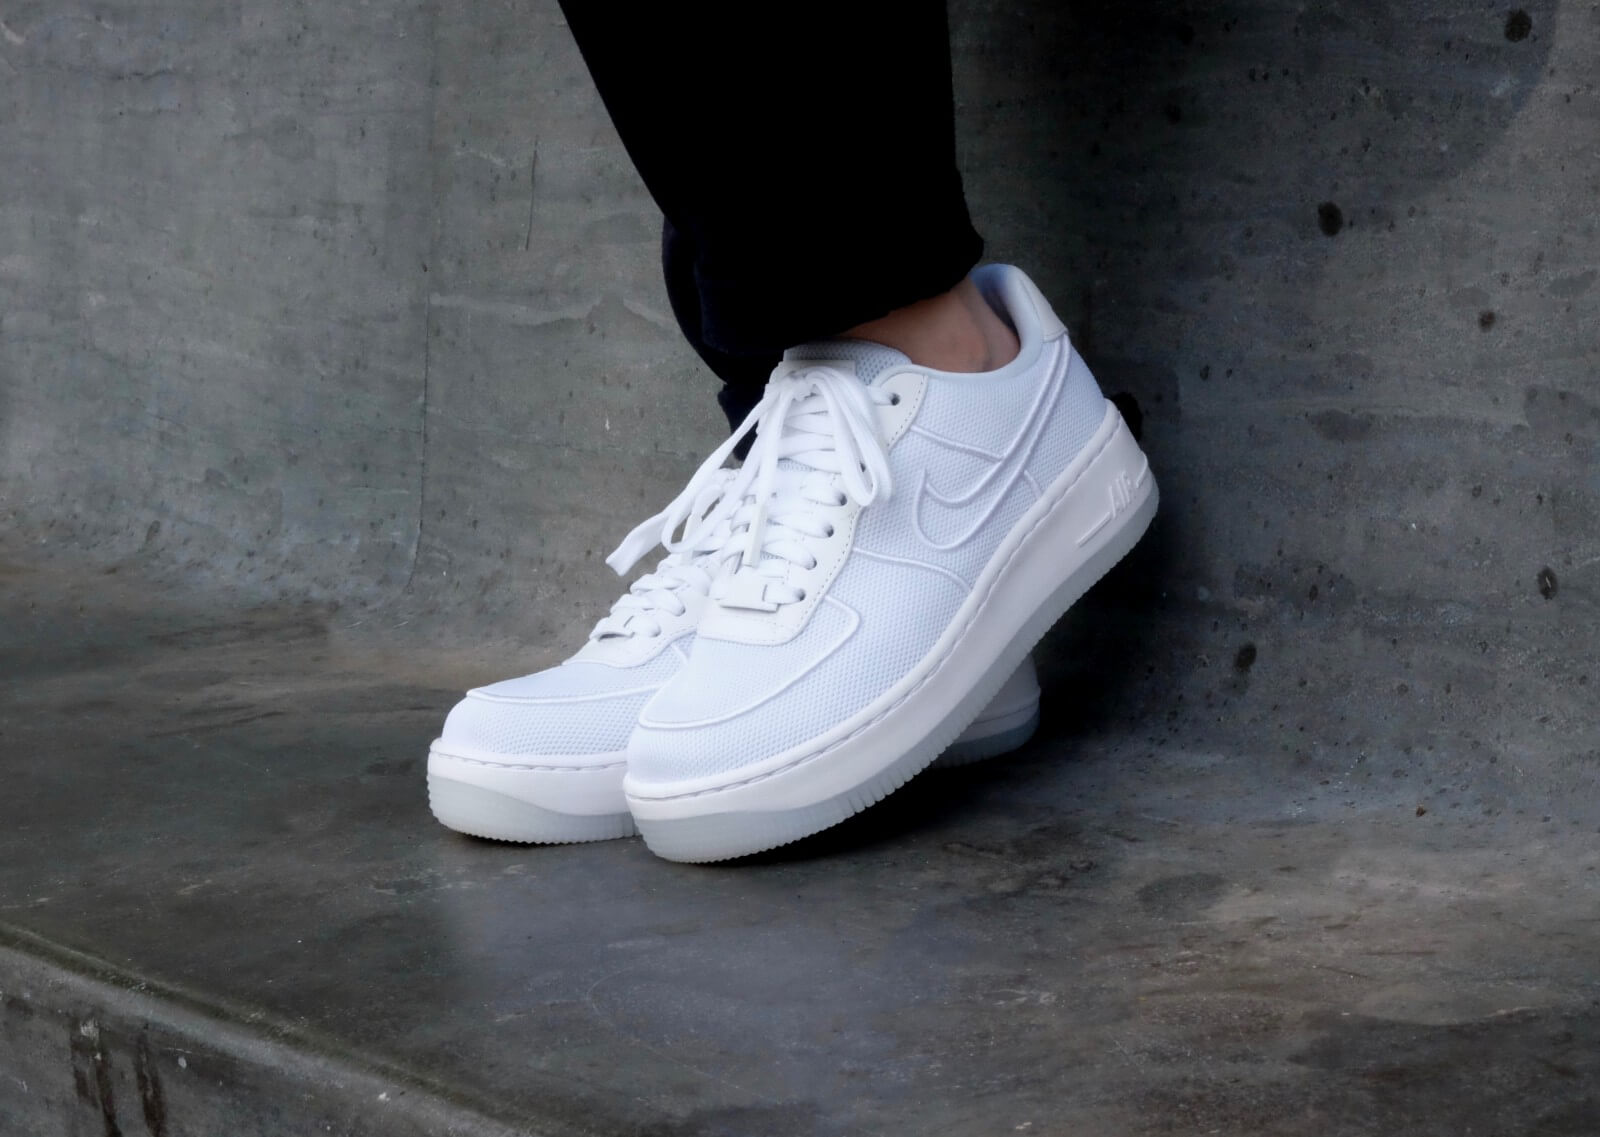 reputable site 4ad34 8042c ... 07 black white split pack 1b662 8893f best price nike wmns air force 1  low upstep br white glacier blue 01a3b 82e83 ...